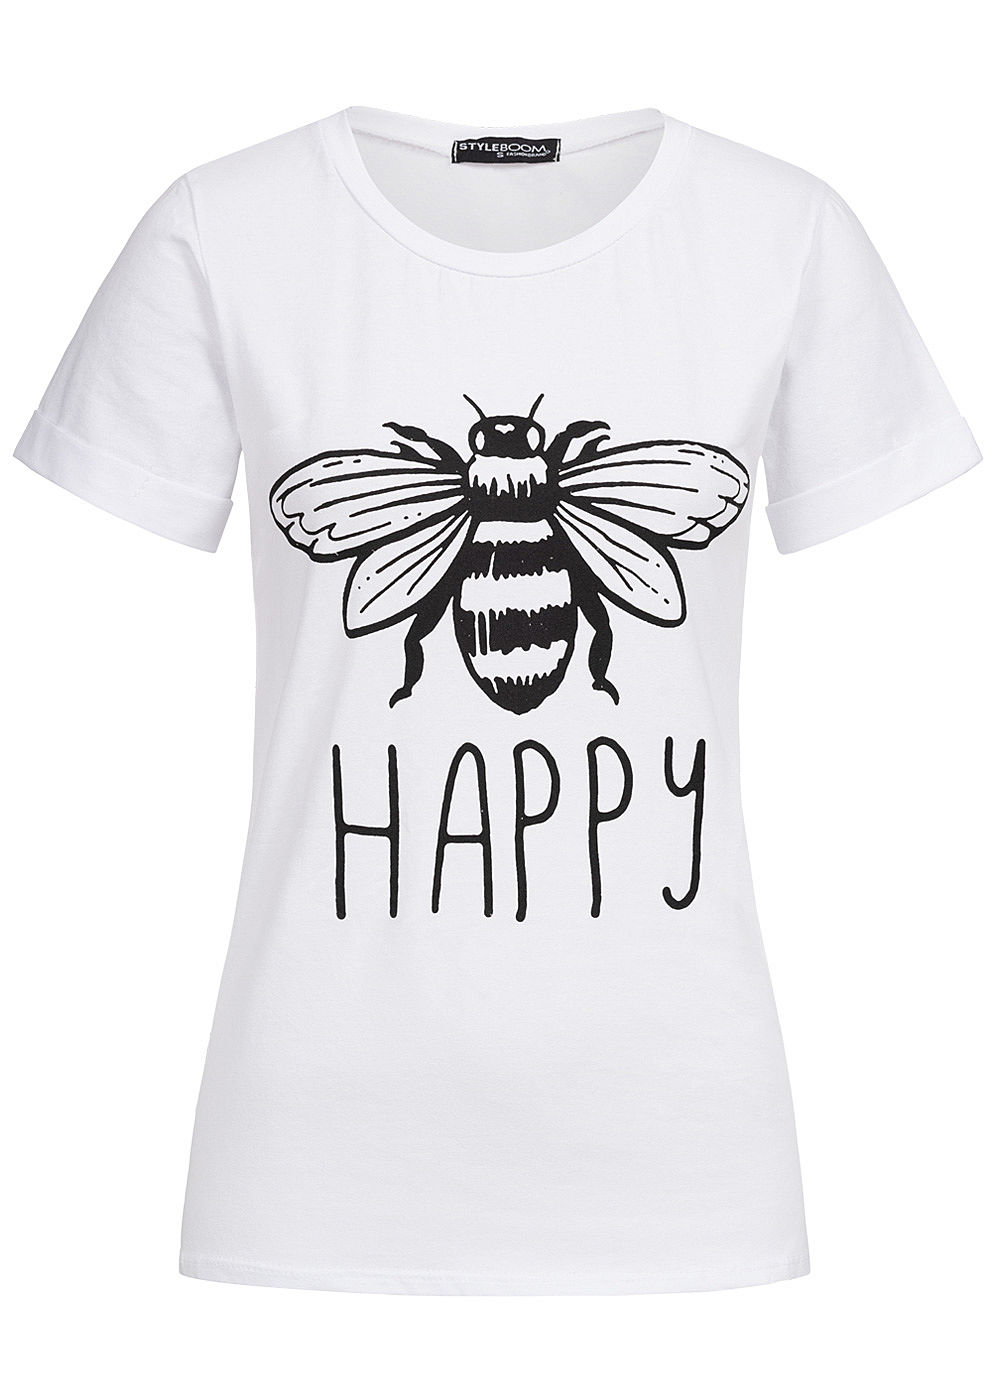 Styleboom Fashion Damen T-Shirt Bee Happy Print weiss - Art.-Nr.: 19076496